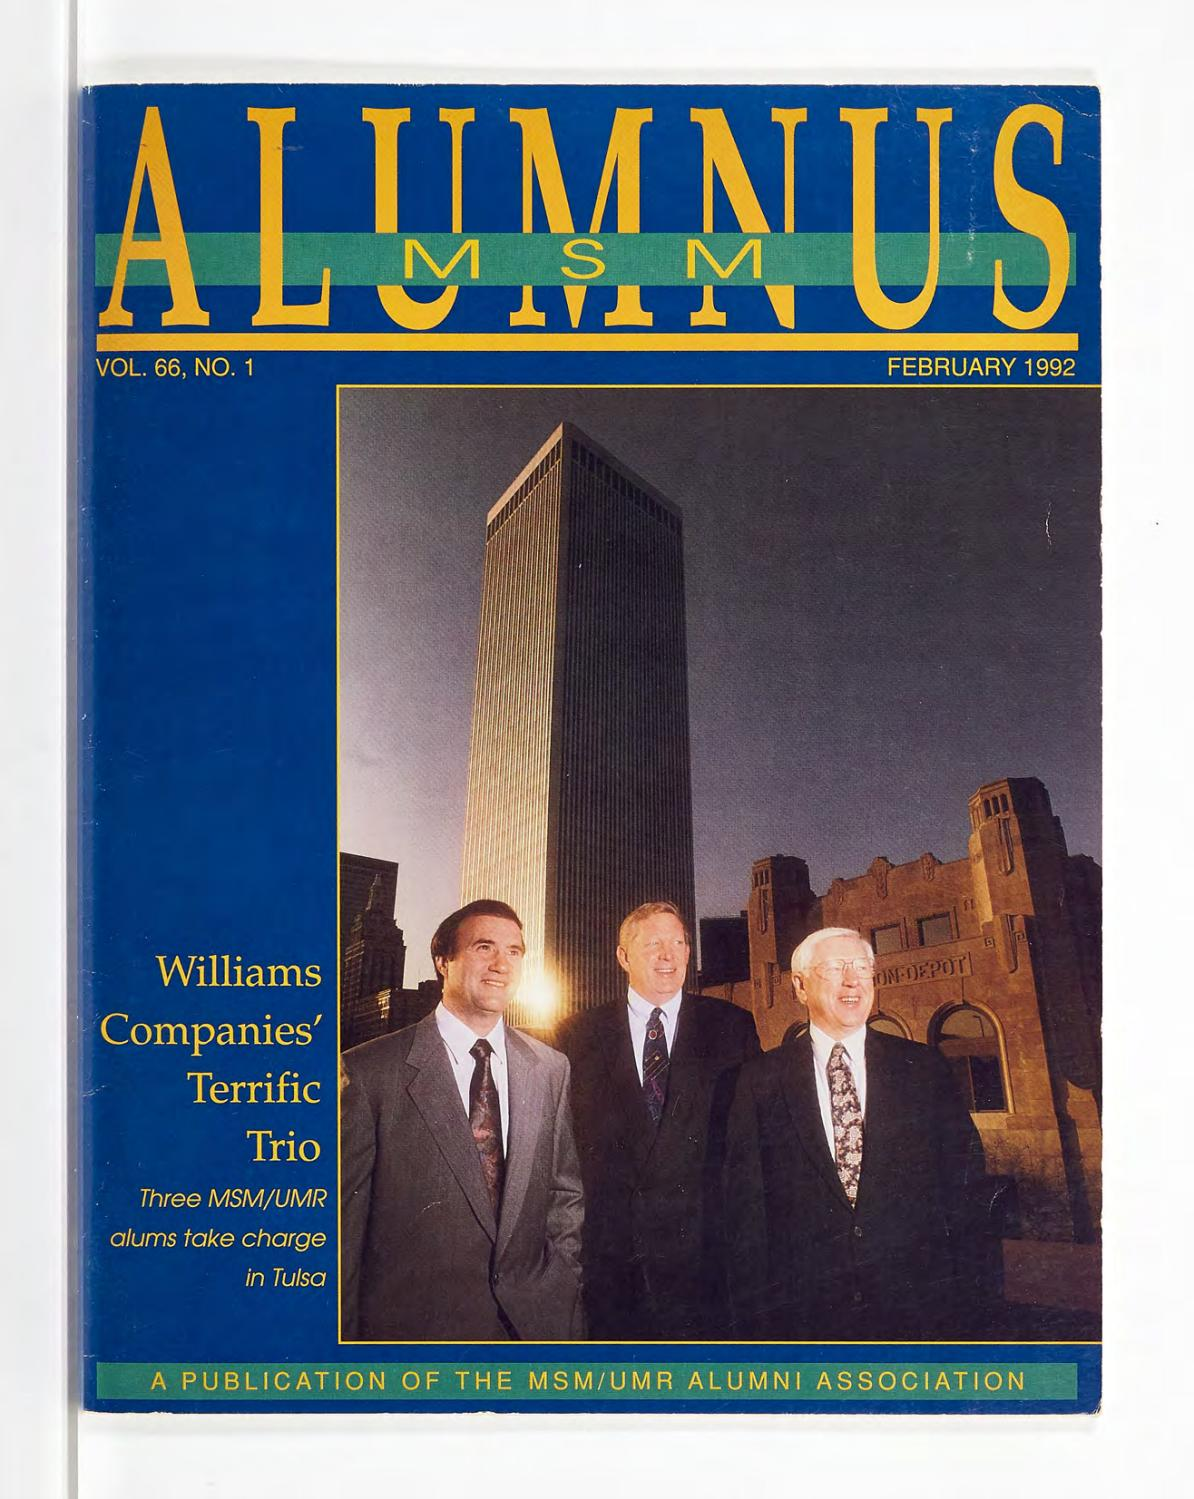 Missouri S T Magazine February 1992 By Missouri S T Library And Learning Resources Curtis Laws Wilson Library Issuu At that moment, retail grocery inventory services, or rgis for short, began its historical journey. missouri s t magazine february 1992 by